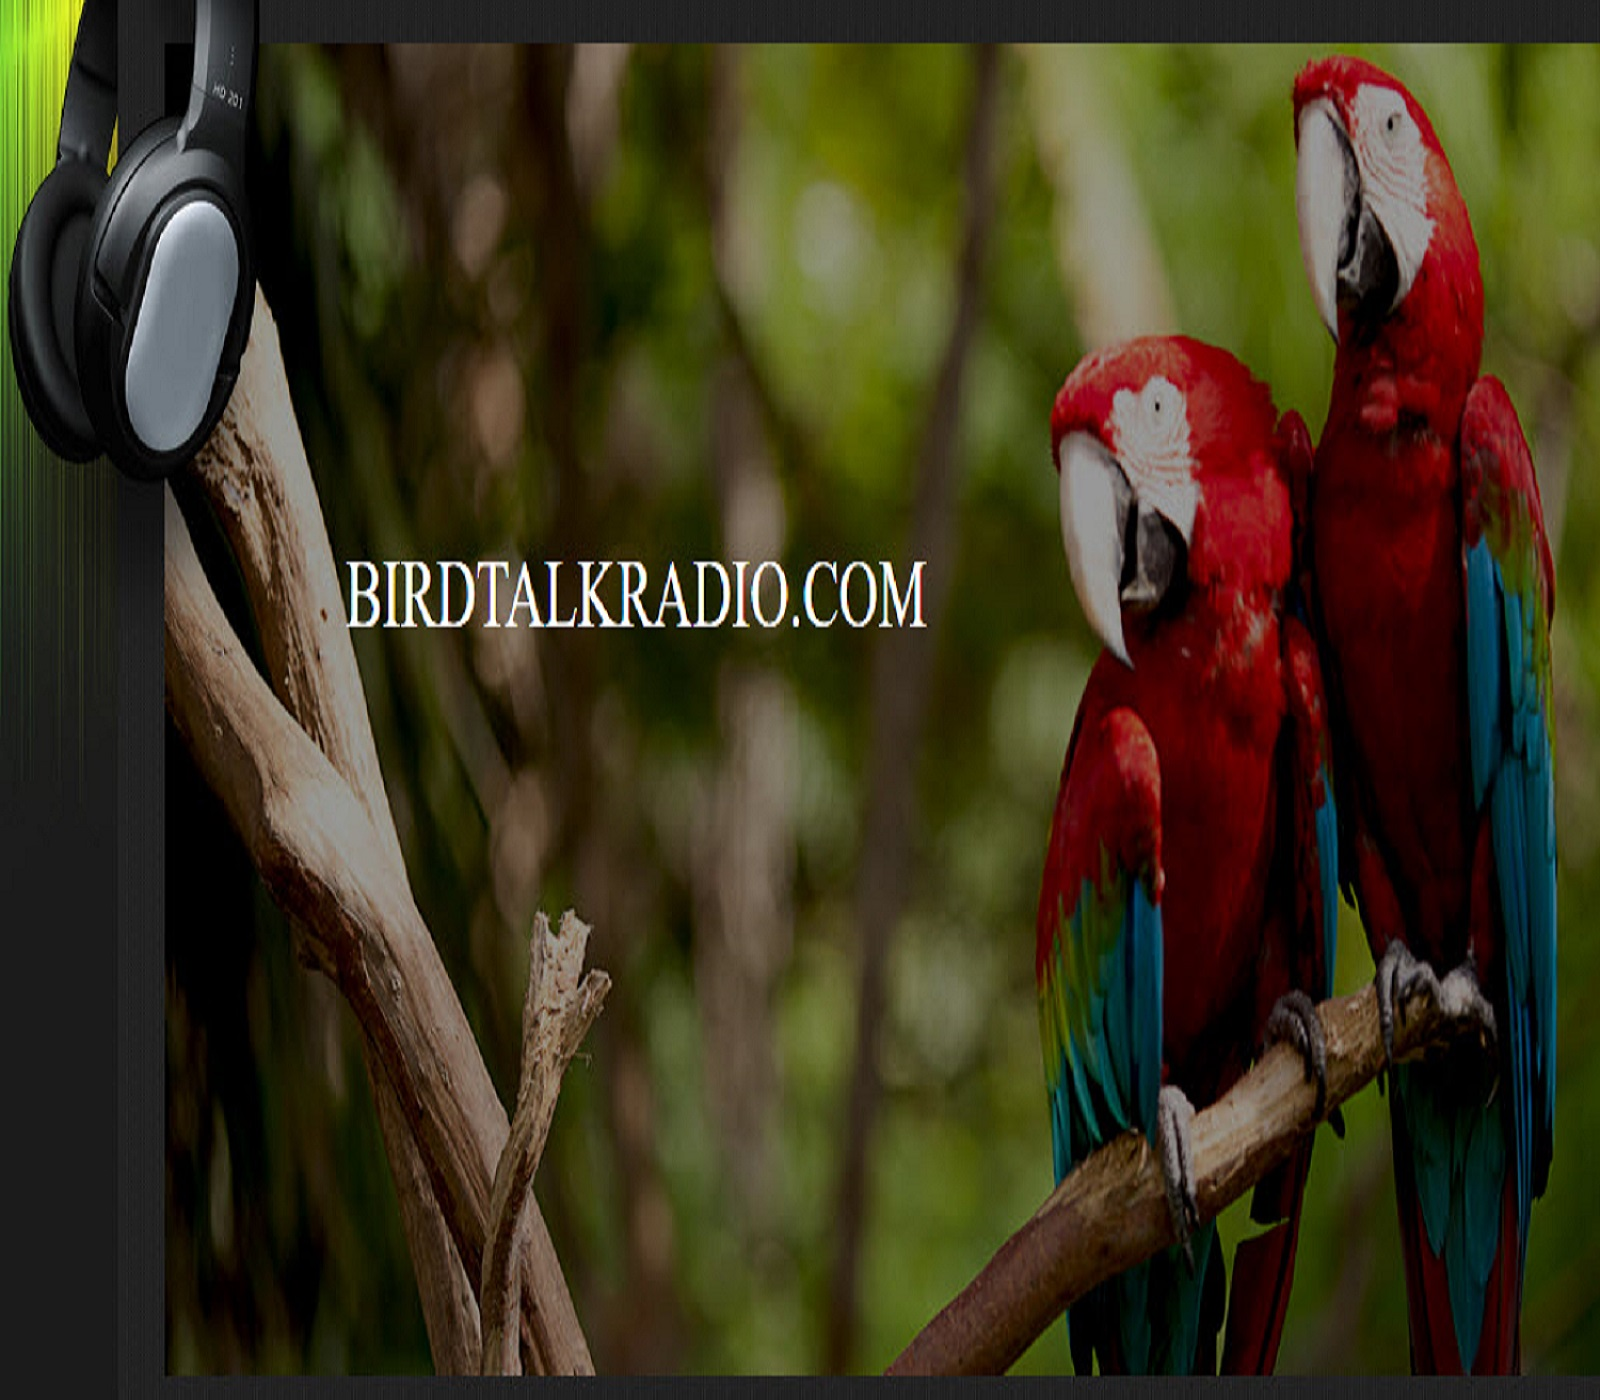 Bird Talk Radio